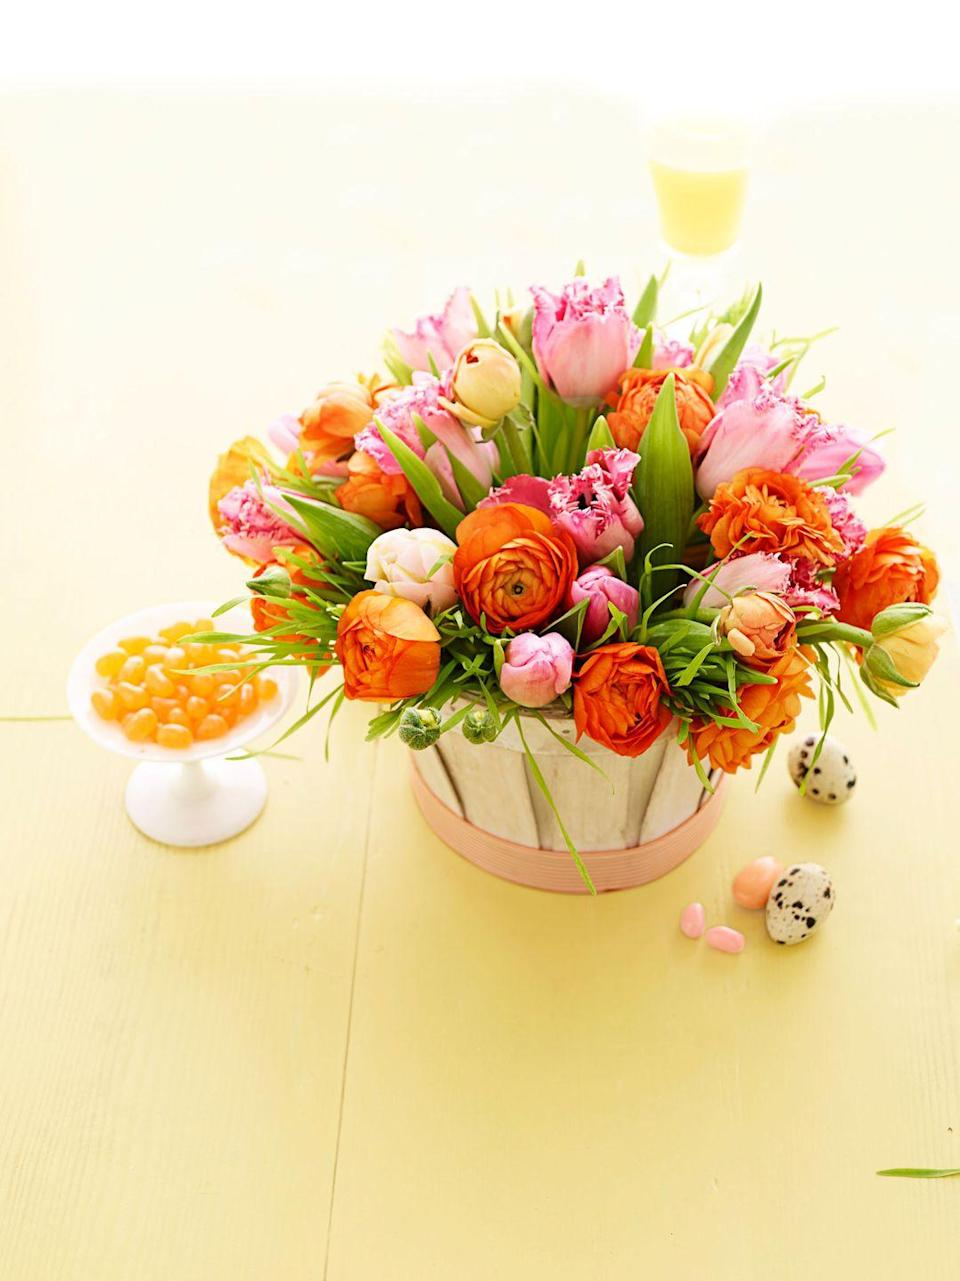 """<p>Gather vivid parrot tulips and ranunculus in similar tones in a ribbon-trimmed, whitewashed peck basket. Line with plastic wrap and pack with wet floral foam; add stems and grass.</p><p><a class=""""link rapid-noclick-resp"""" href=""""https://www.amazon.com/Texas-Basket-10-5-Handle-Peck/dp/B00N41FWGY?tag=syn-yahoo-20&ascsubtag=%5Bartid%7C10055.g.2217%5Bsrc%7Cyahoo-us"""" rel=""""nofollow noopener"""" target=""""_blank"""" data-ylk=""""slk:BUY PECK BASKET"""">BUY PECK BASKET</a> <br></p>"""